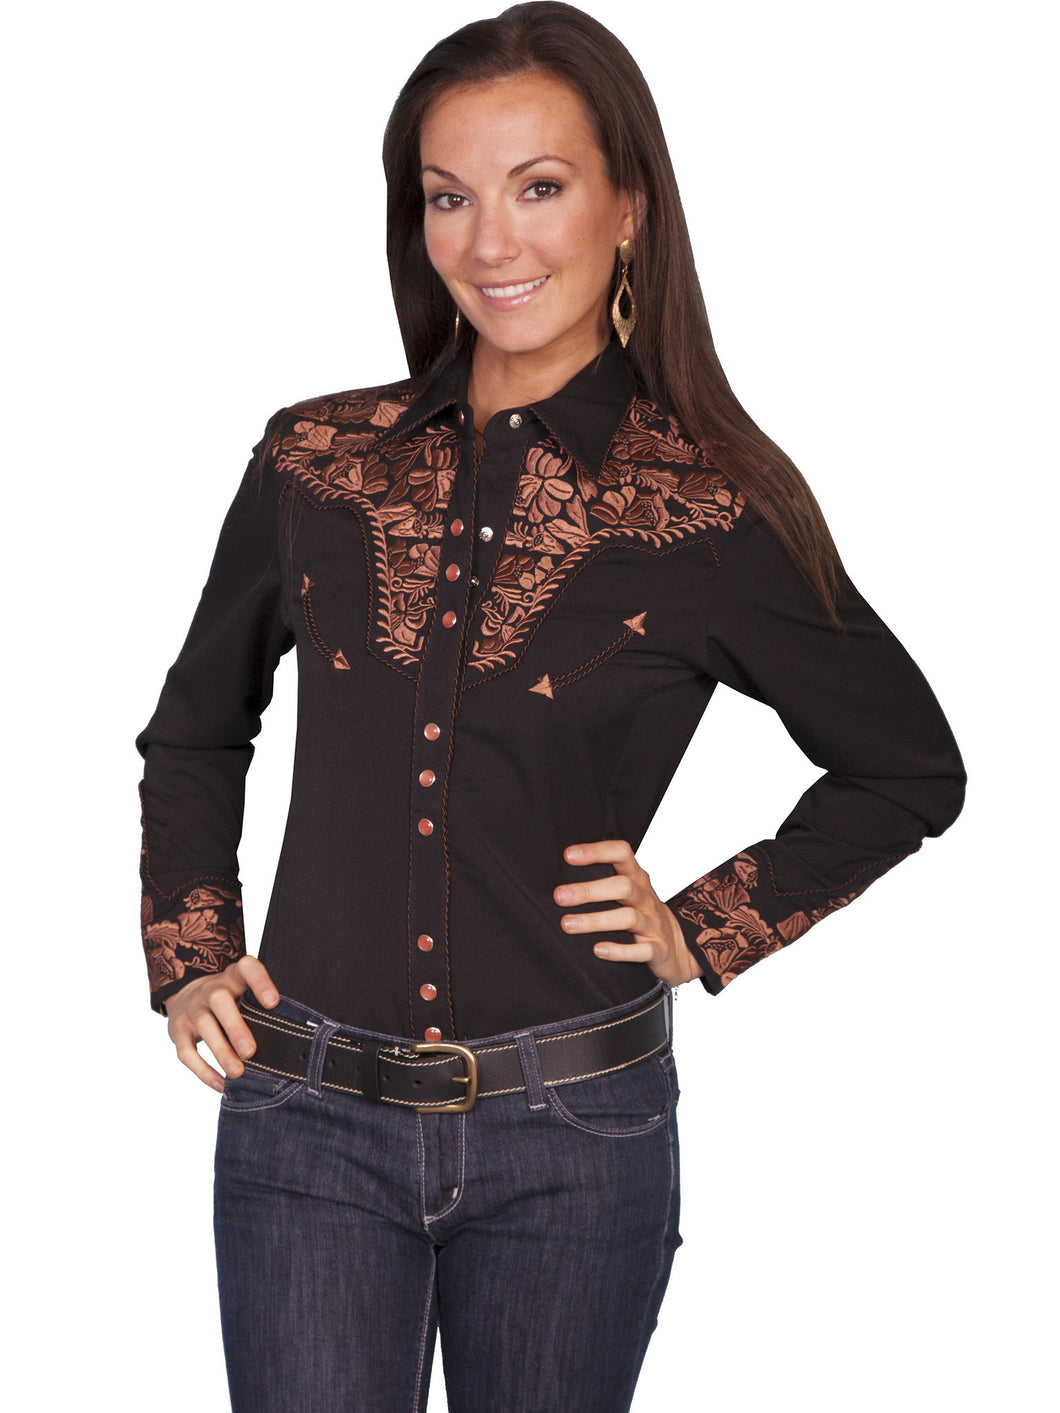 Scully PL-654 Women's Poly/Rayon Blend Snap Front Blouse